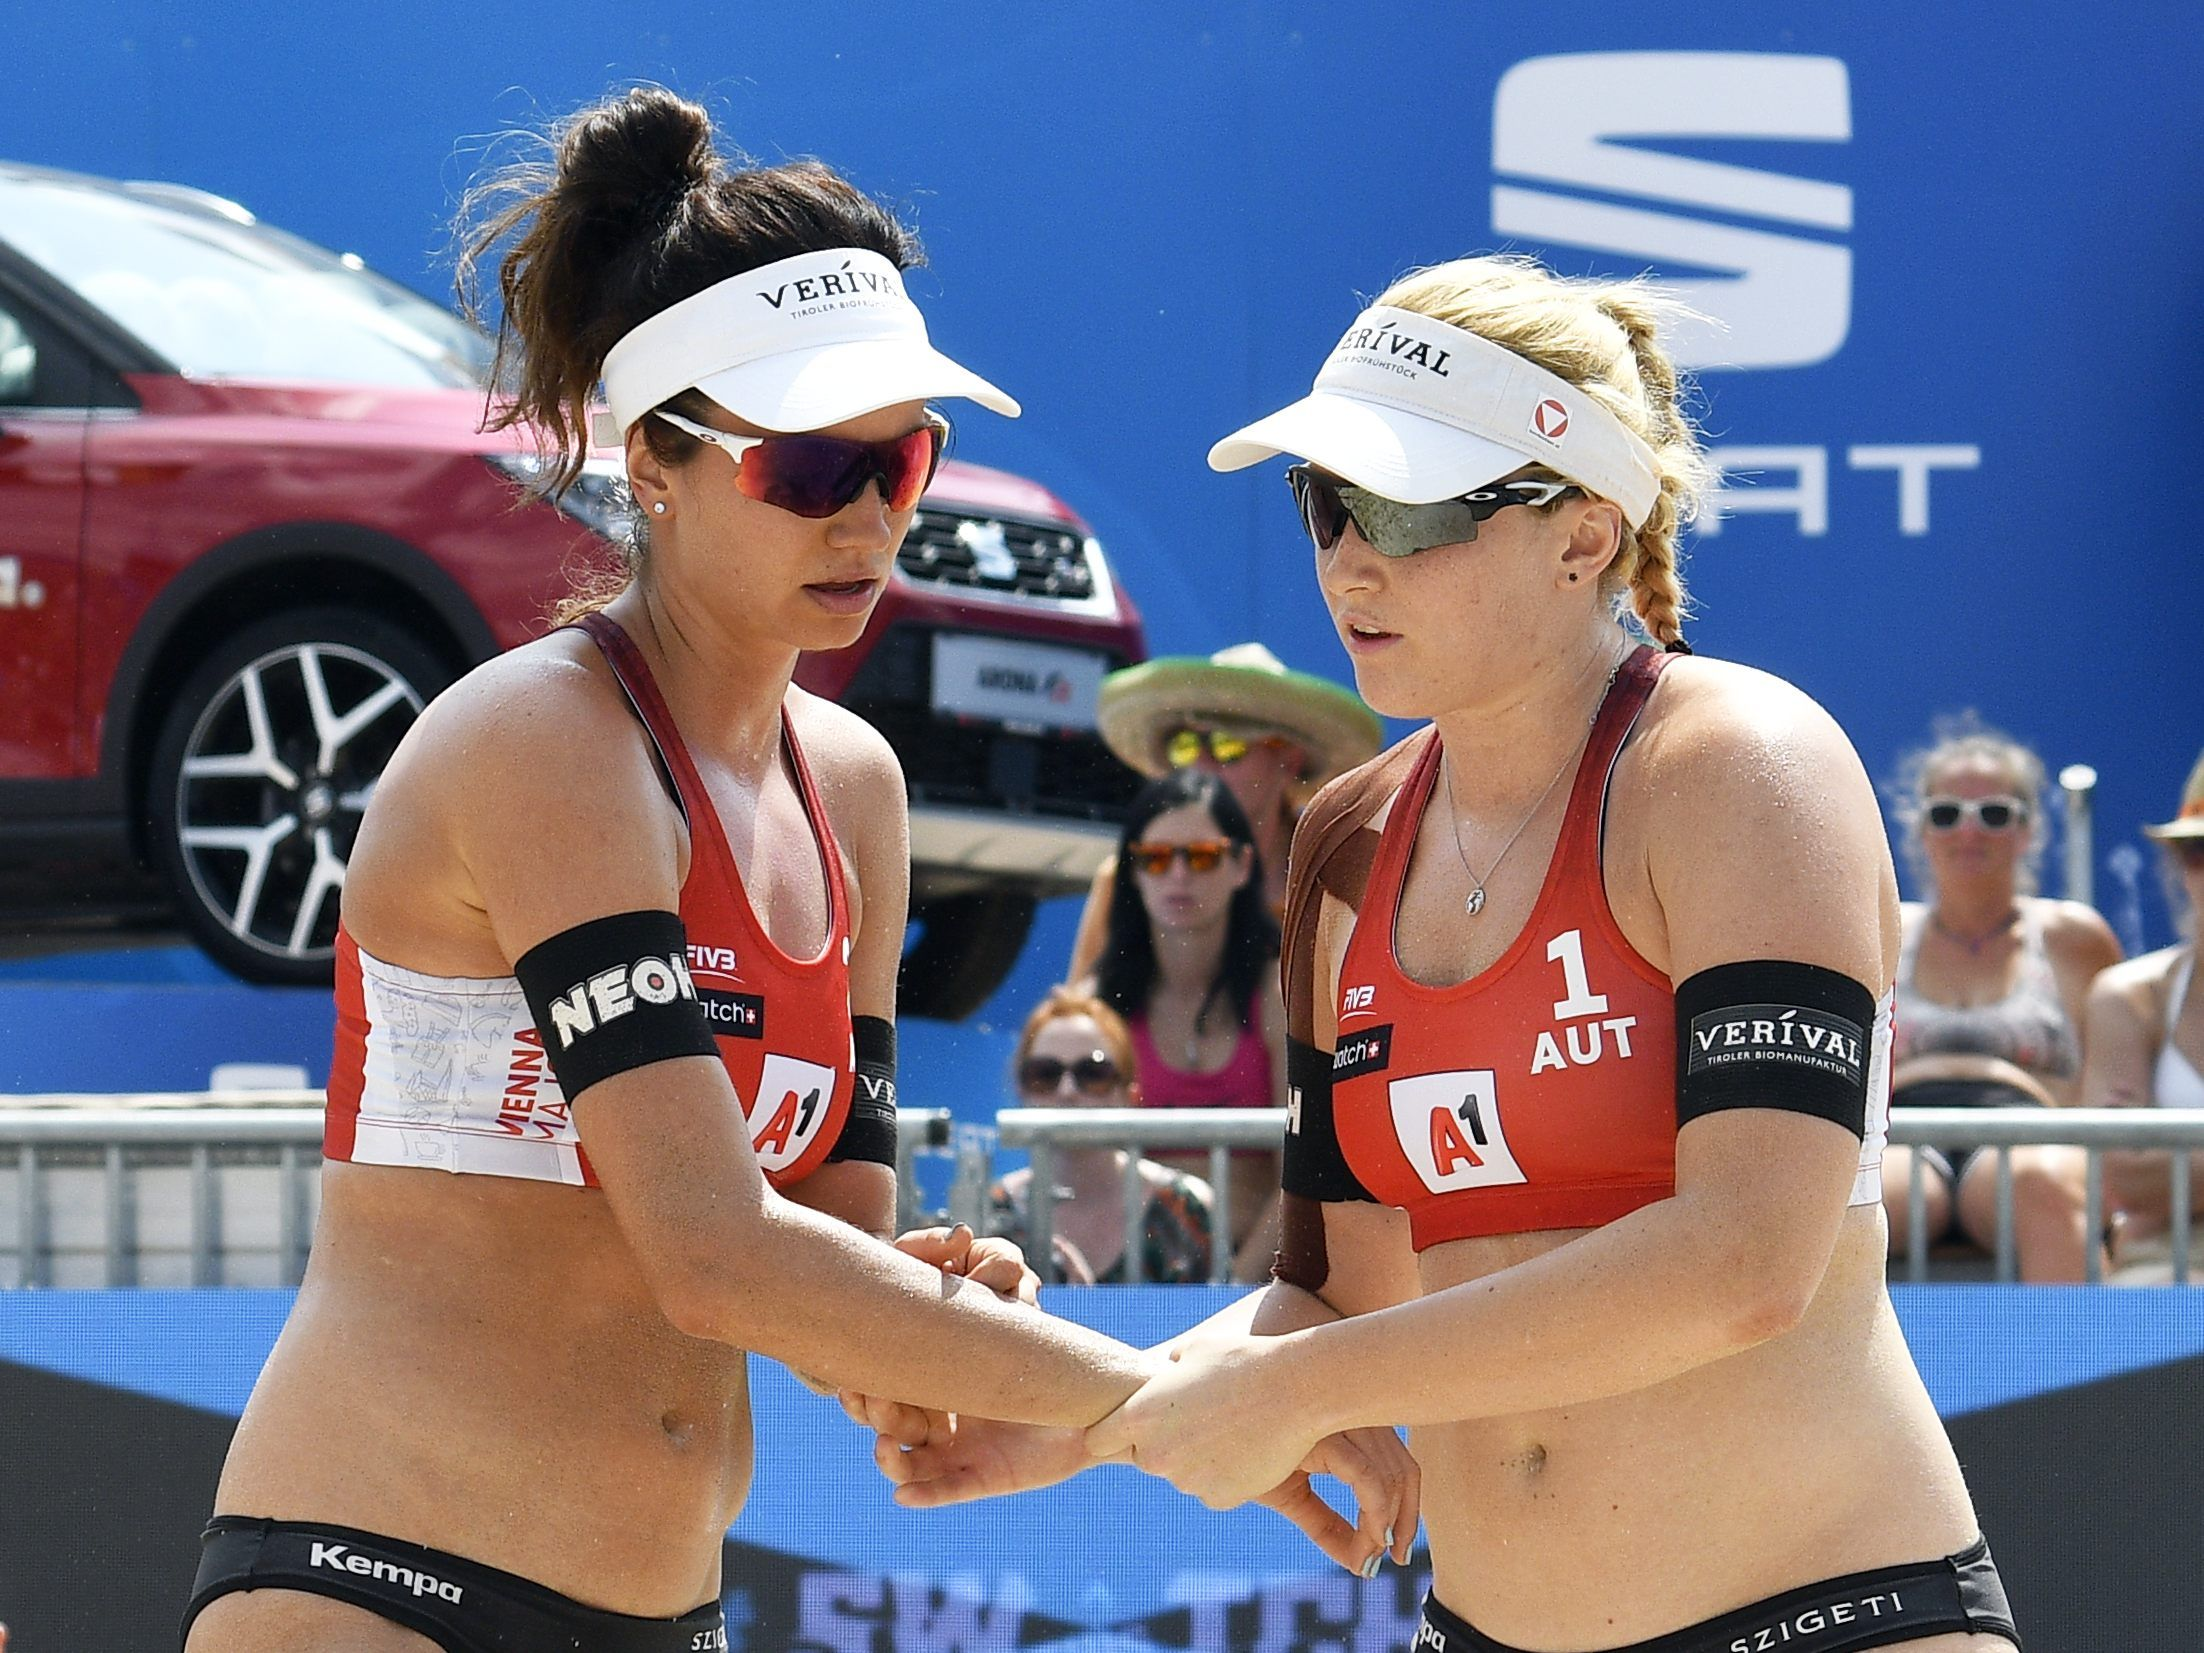 The ÖVV ladies poured out a permanent victory from the Vienna Major.